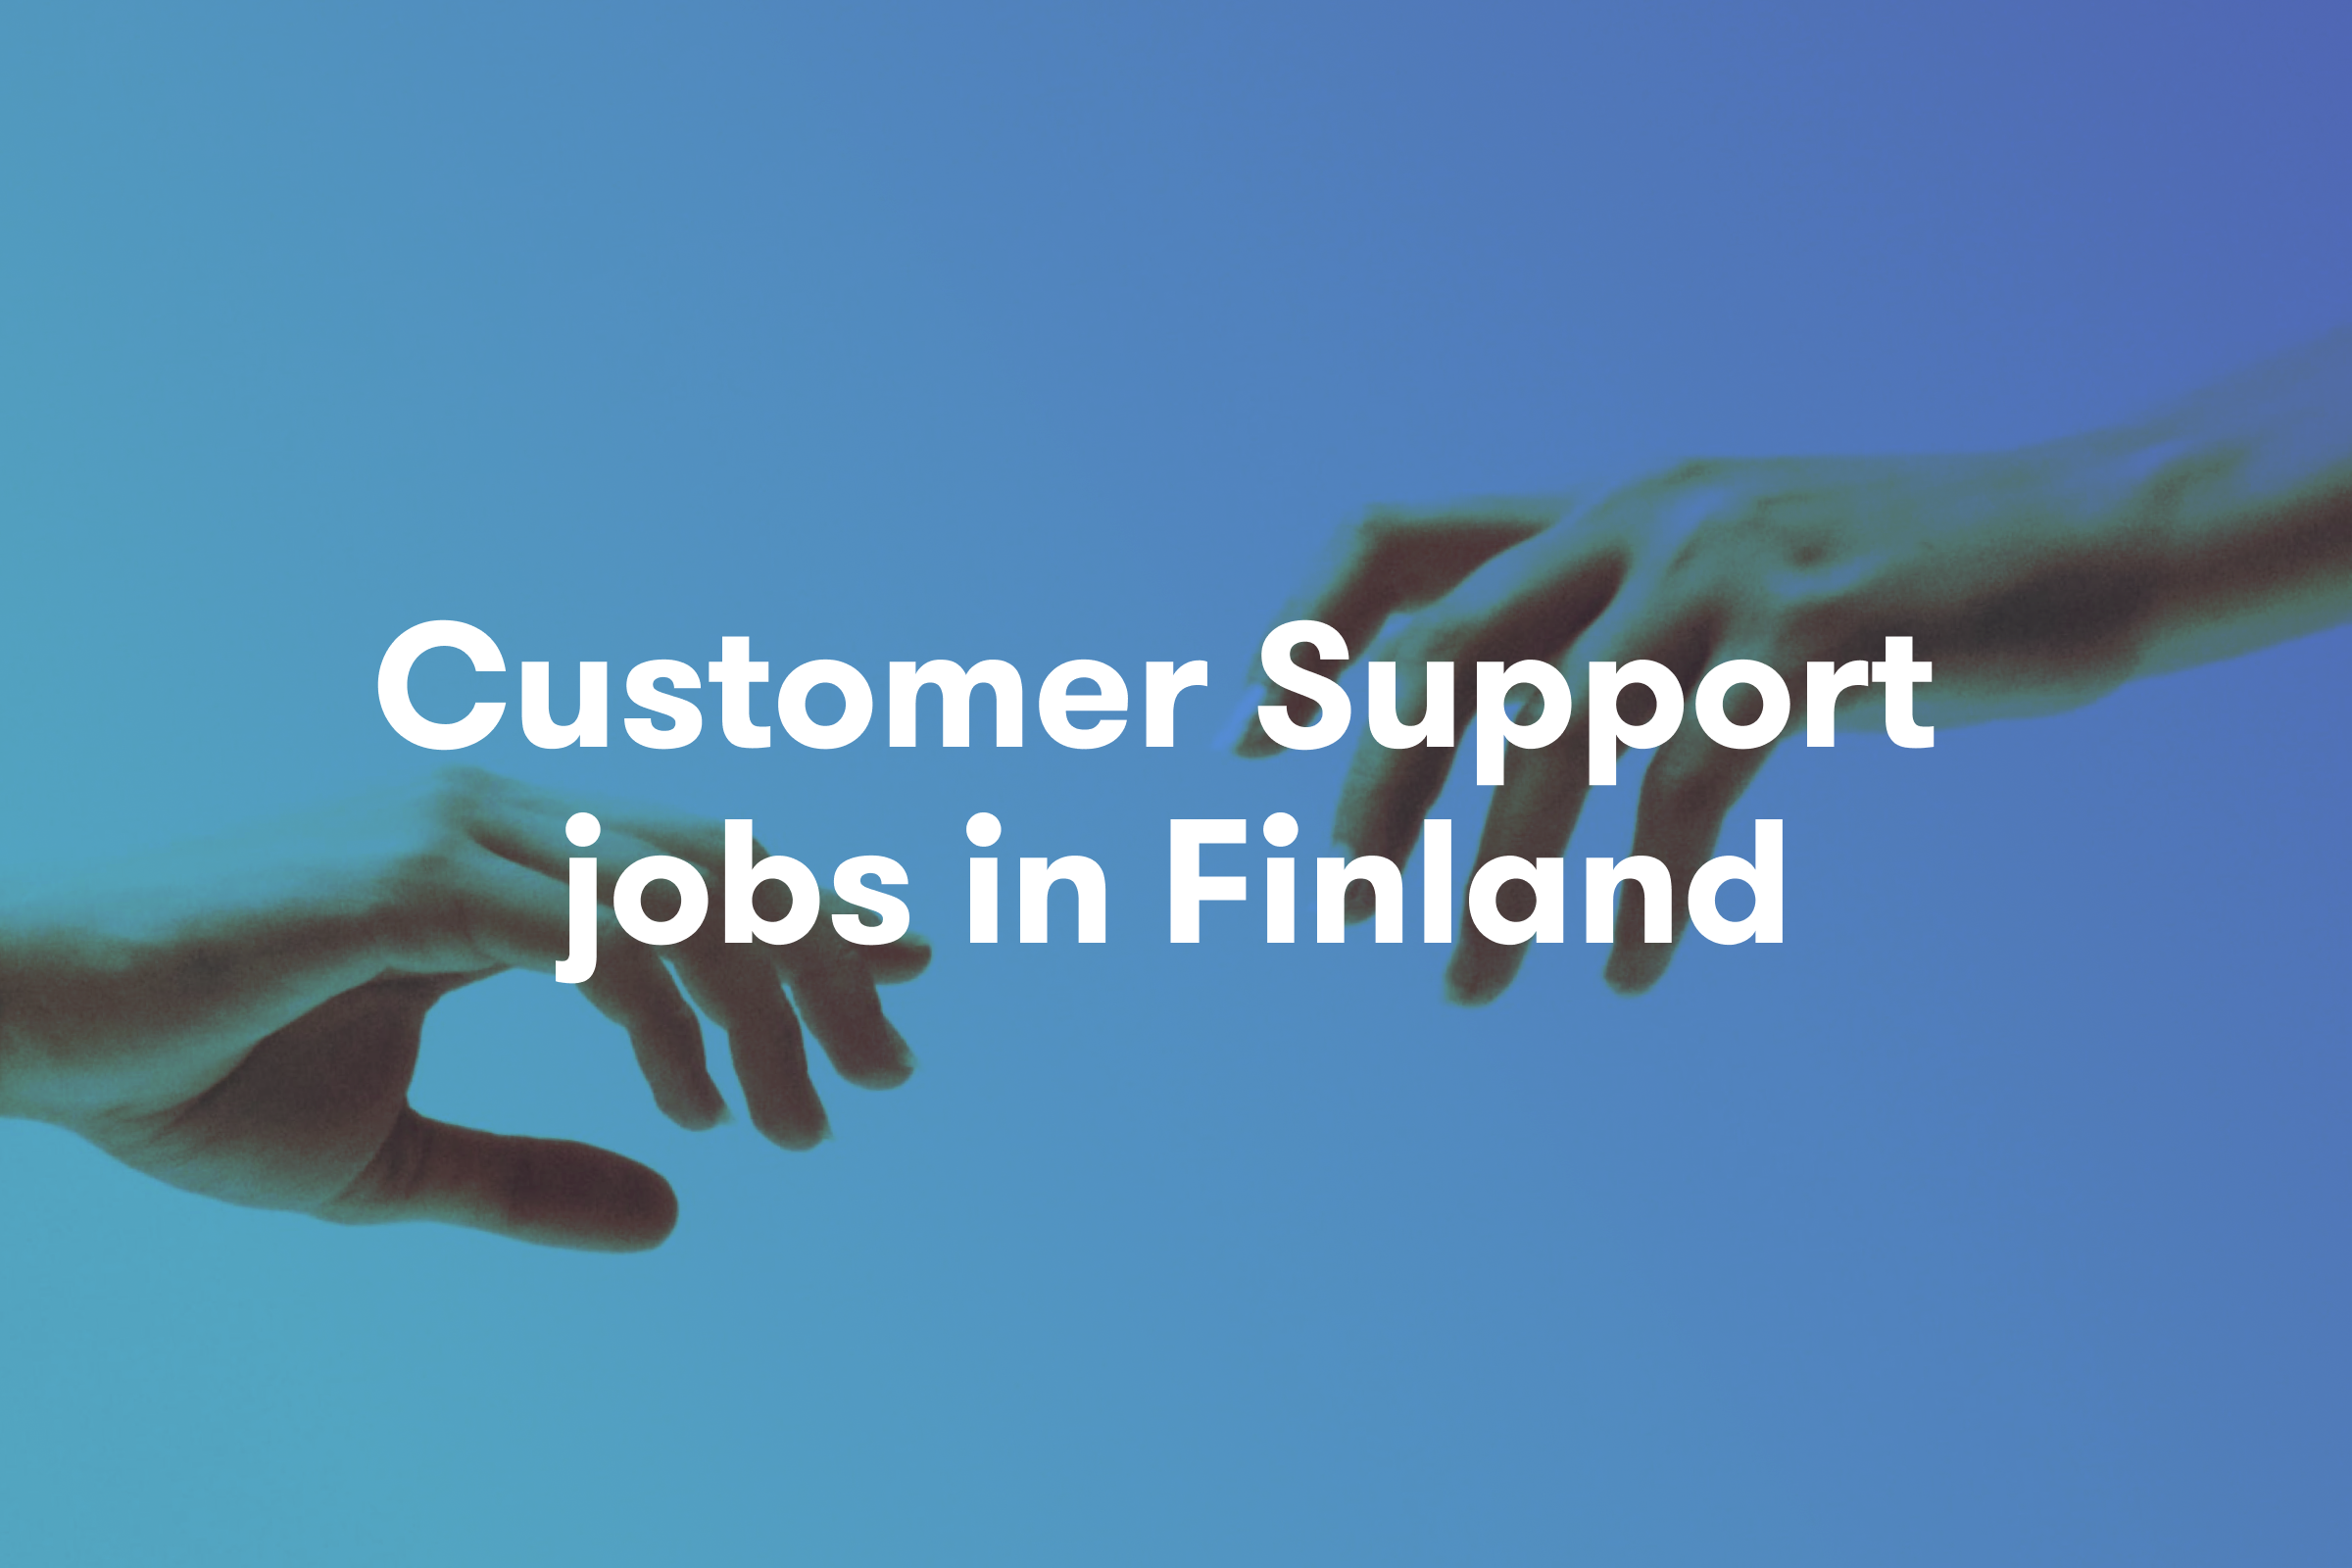 Customer support jobs in finland